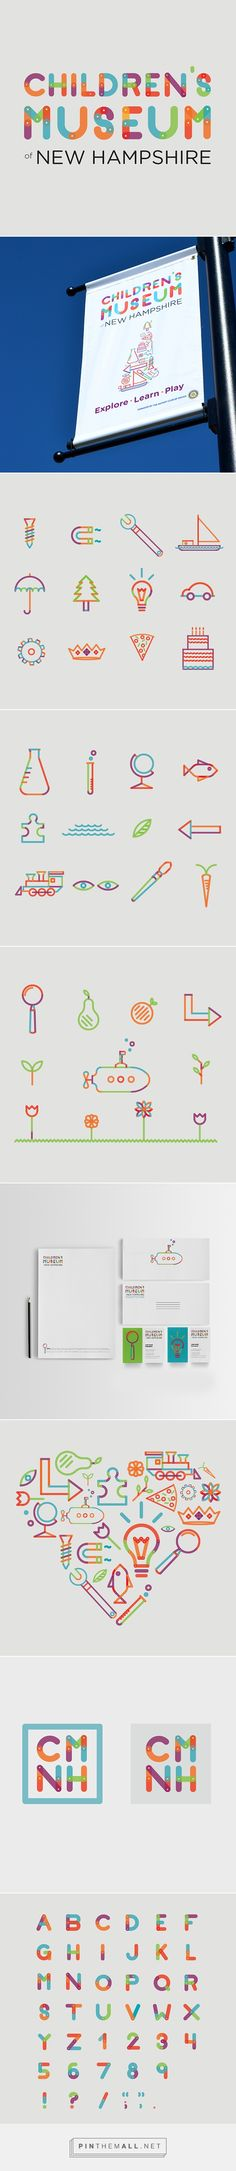 Children's Museum of New Hampshire Re-Brand on Behance - created via https://pinthemall.net